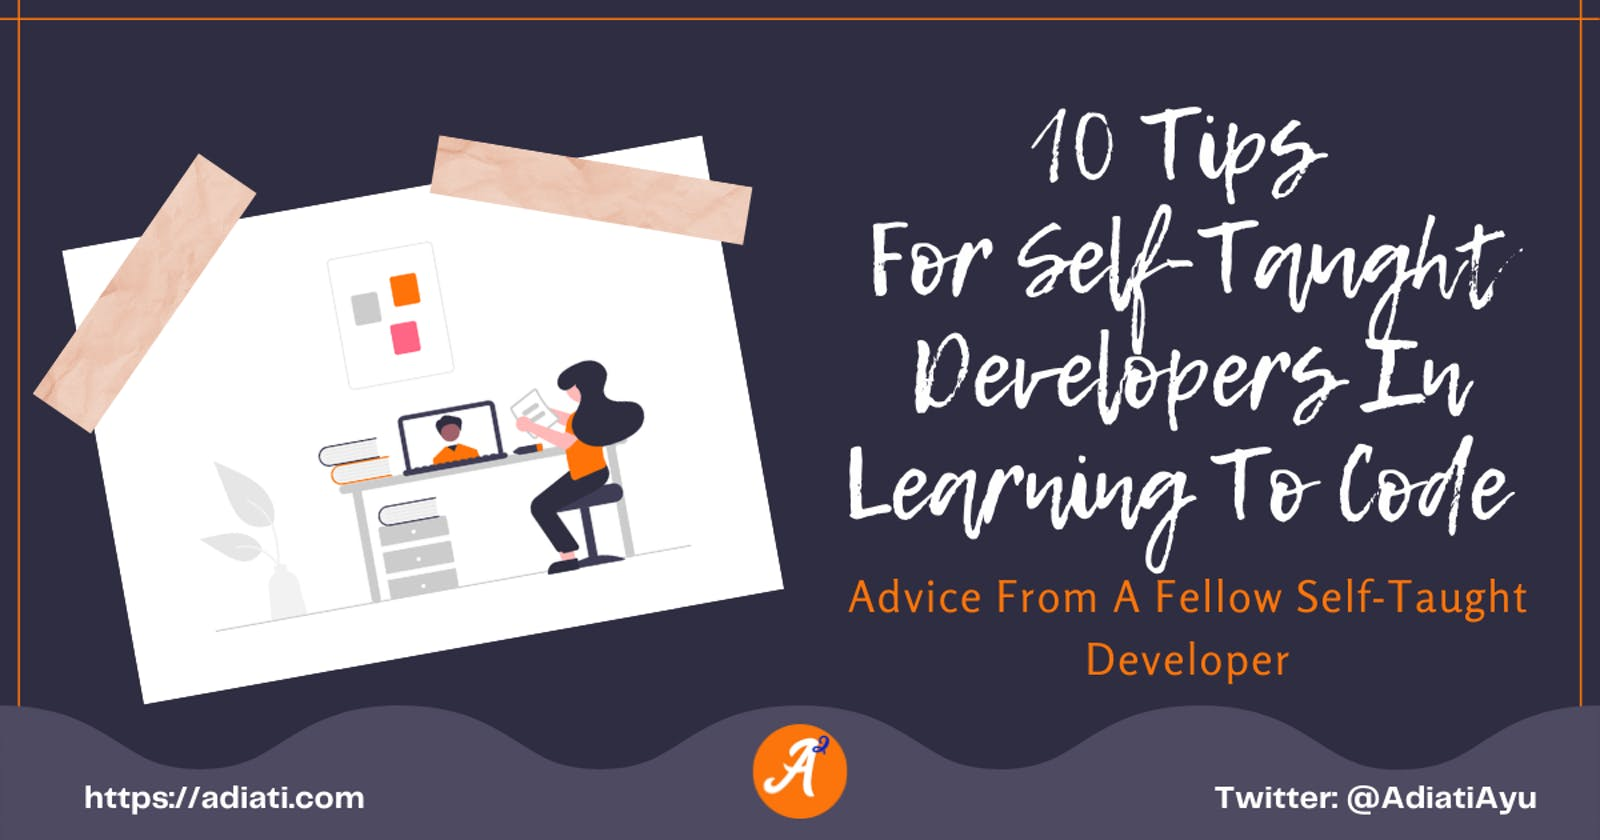 10 Tips For New Self-Taught Developers In Learning To Code